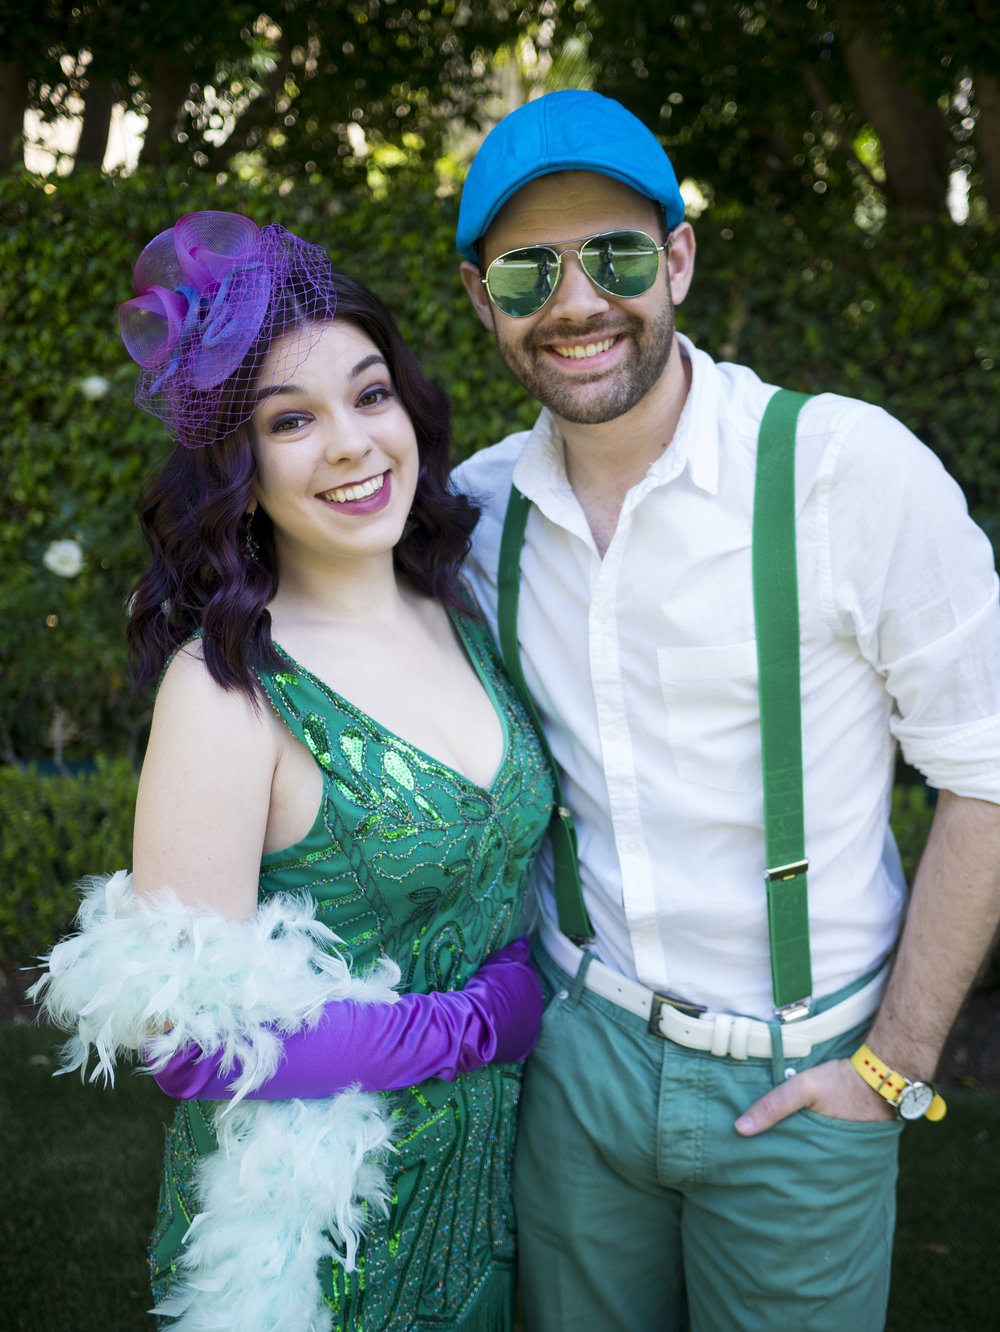 4-22-18 Spring Dapper Day 033.jpg